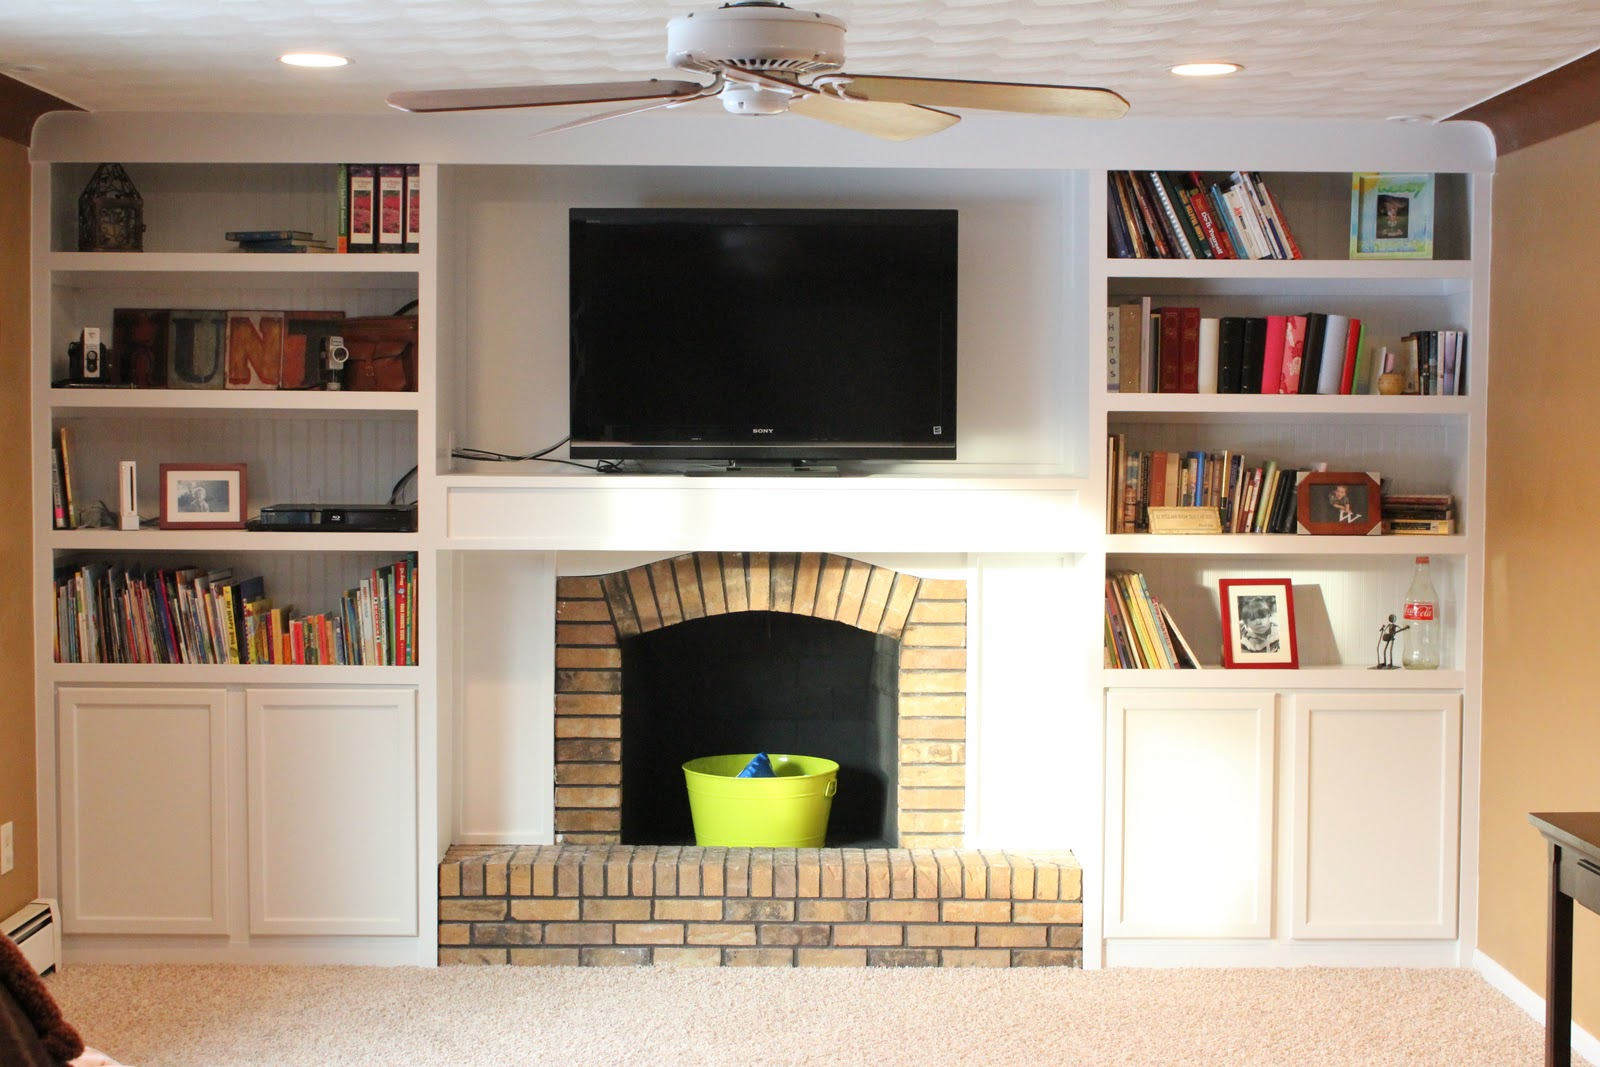 This amazing remodel changed the whole look of this living room! A fireplace remodel with built-in bookshelves